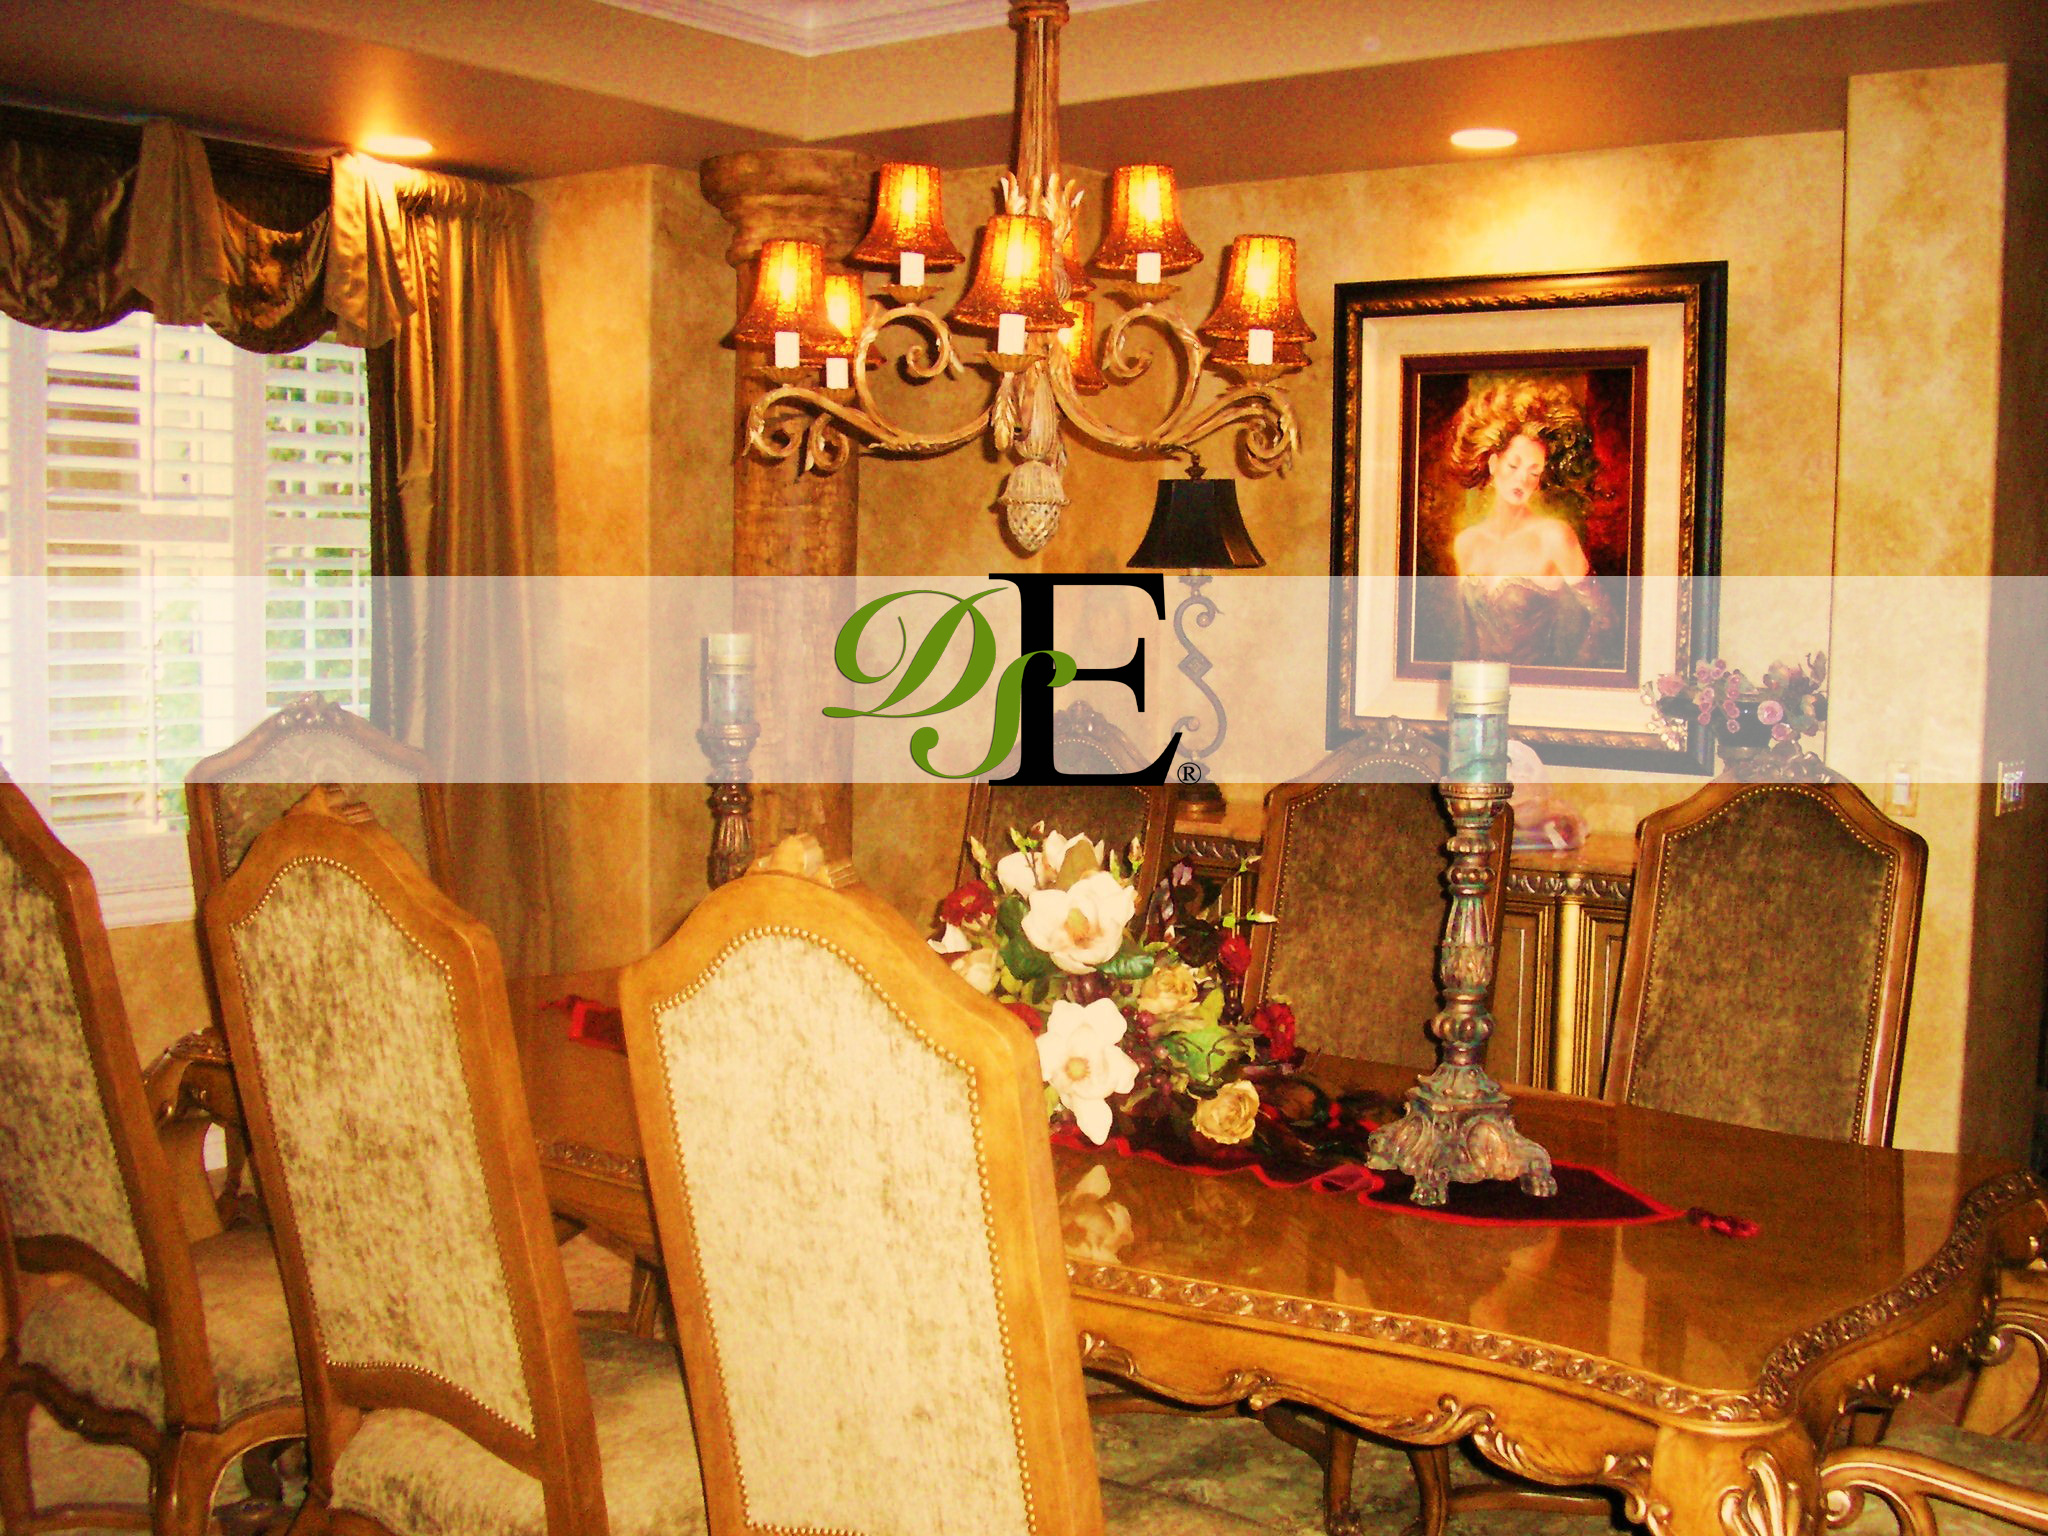 Room Decorative Items Formal Dining Room Decor Large And Beautiful Photos